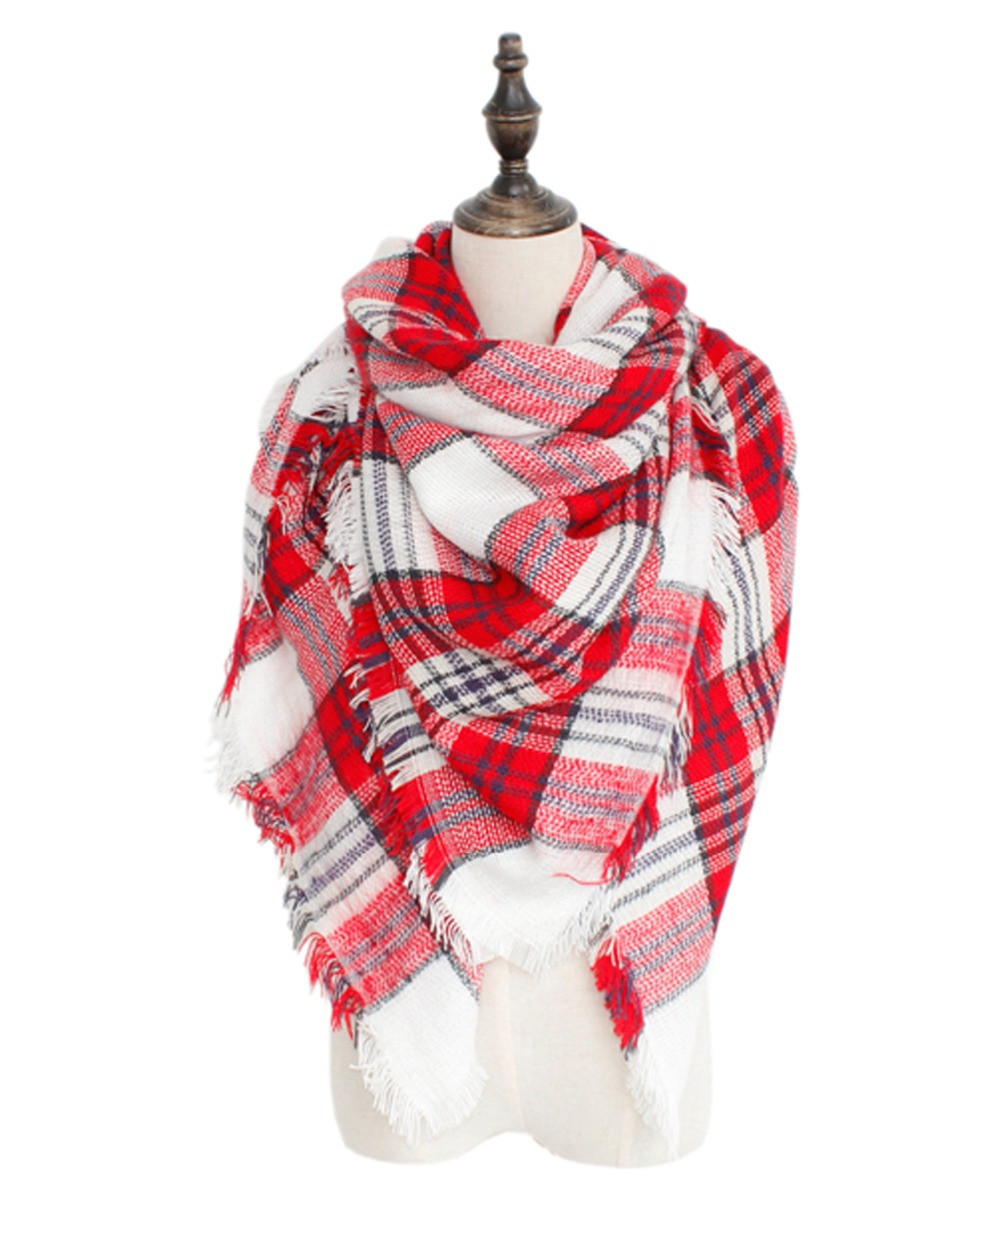 Free Shipping Stylish Designer Wool Plaid Shawl Prime Cozy Warm Material For 2016 Winter And Fall